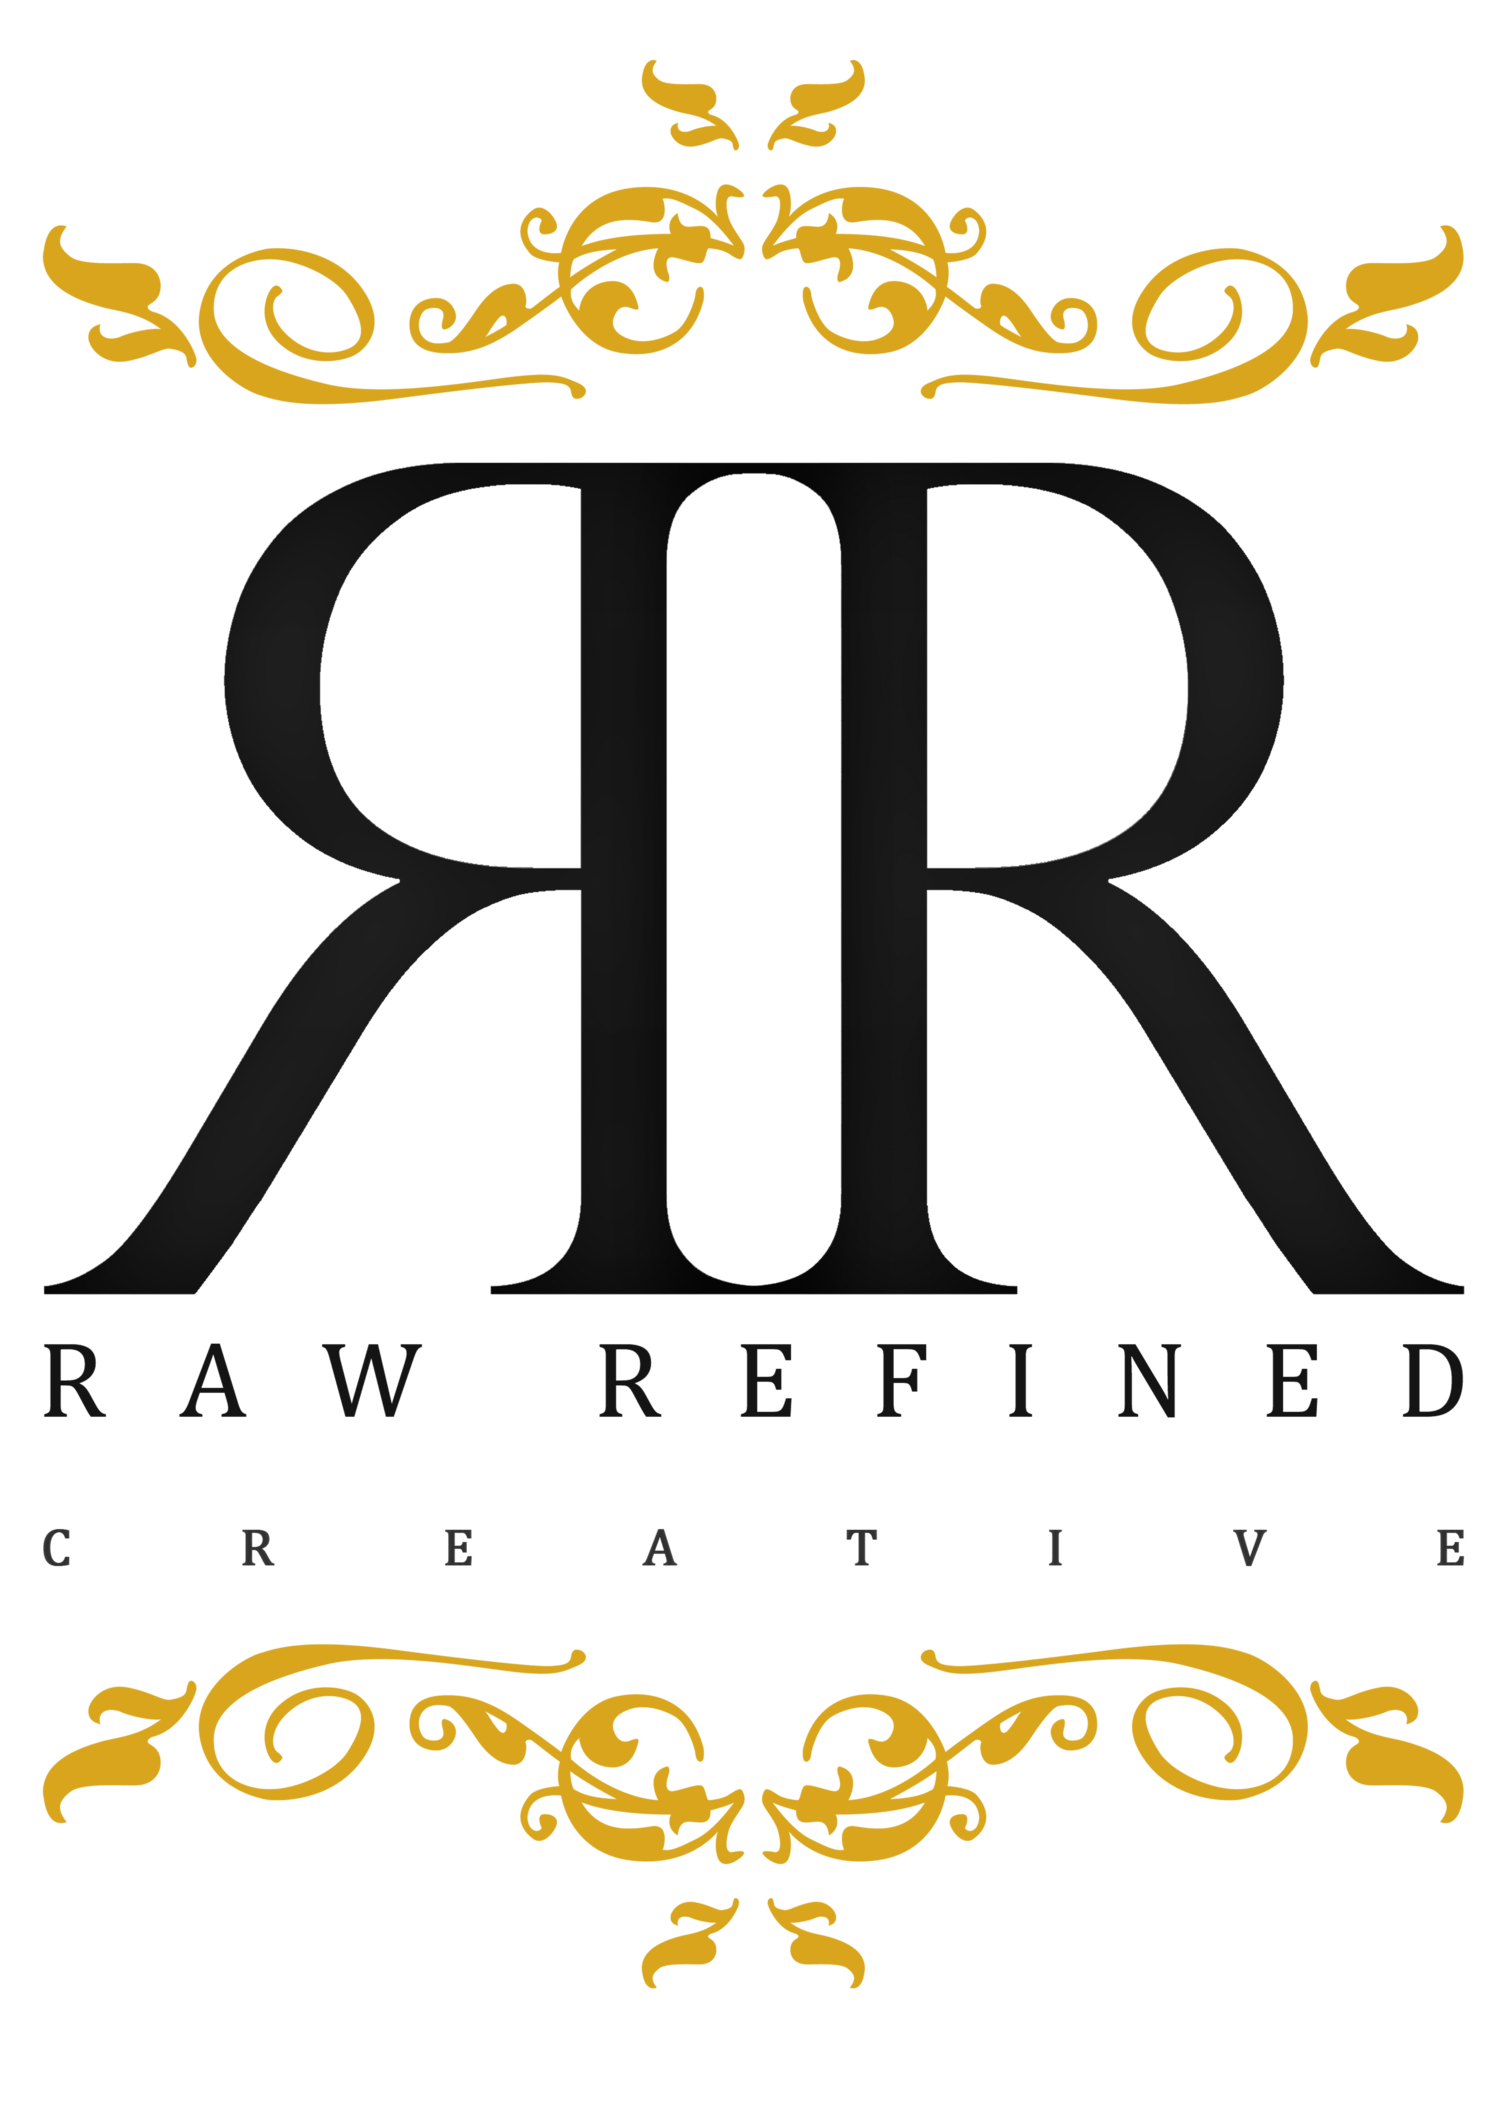 Marquee clipart hollywood. Photo booths raw refined